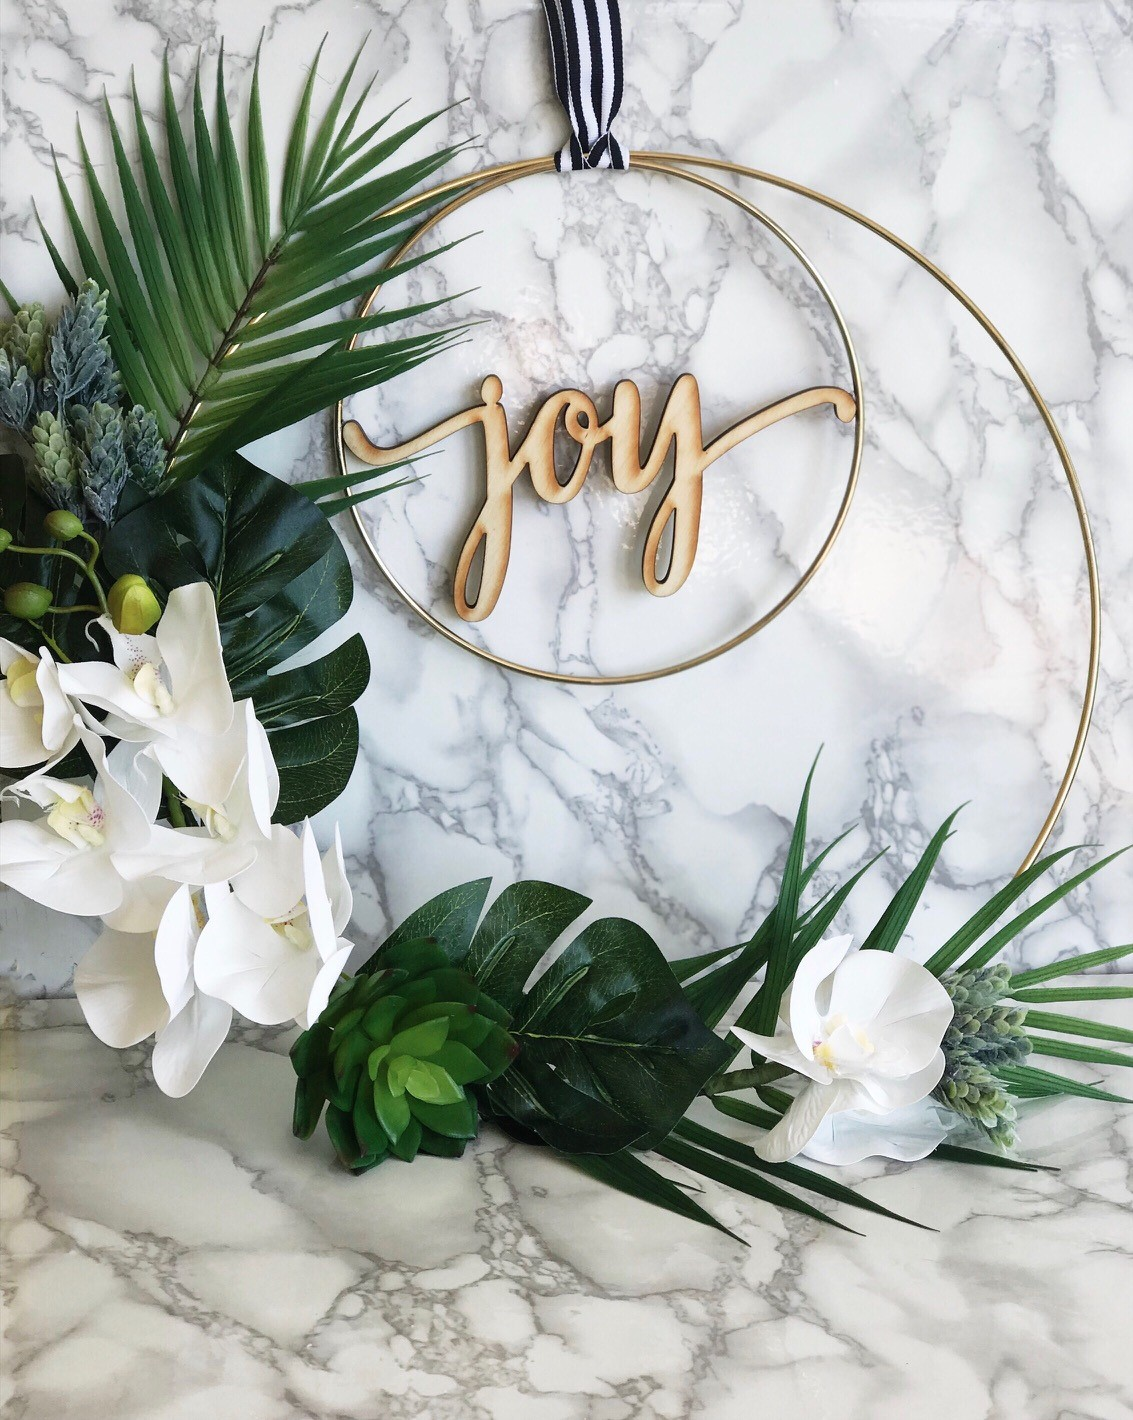 DIY Tropical Wreath for Christmas - gorgeous faux leaves, succulents and orchids make up this simple modern wreath